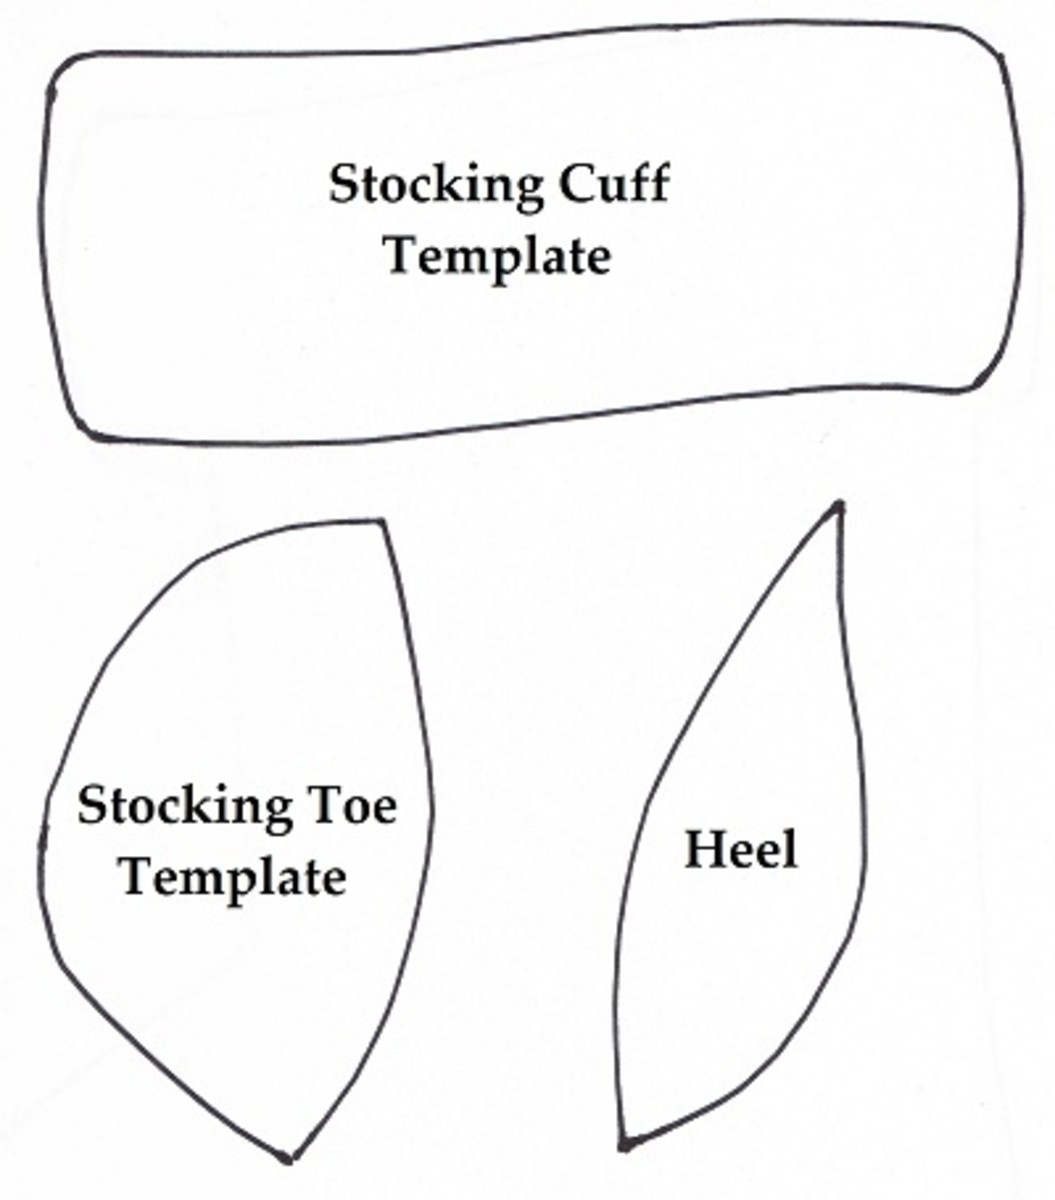 Stocking Cuff, Toe and Heel Template